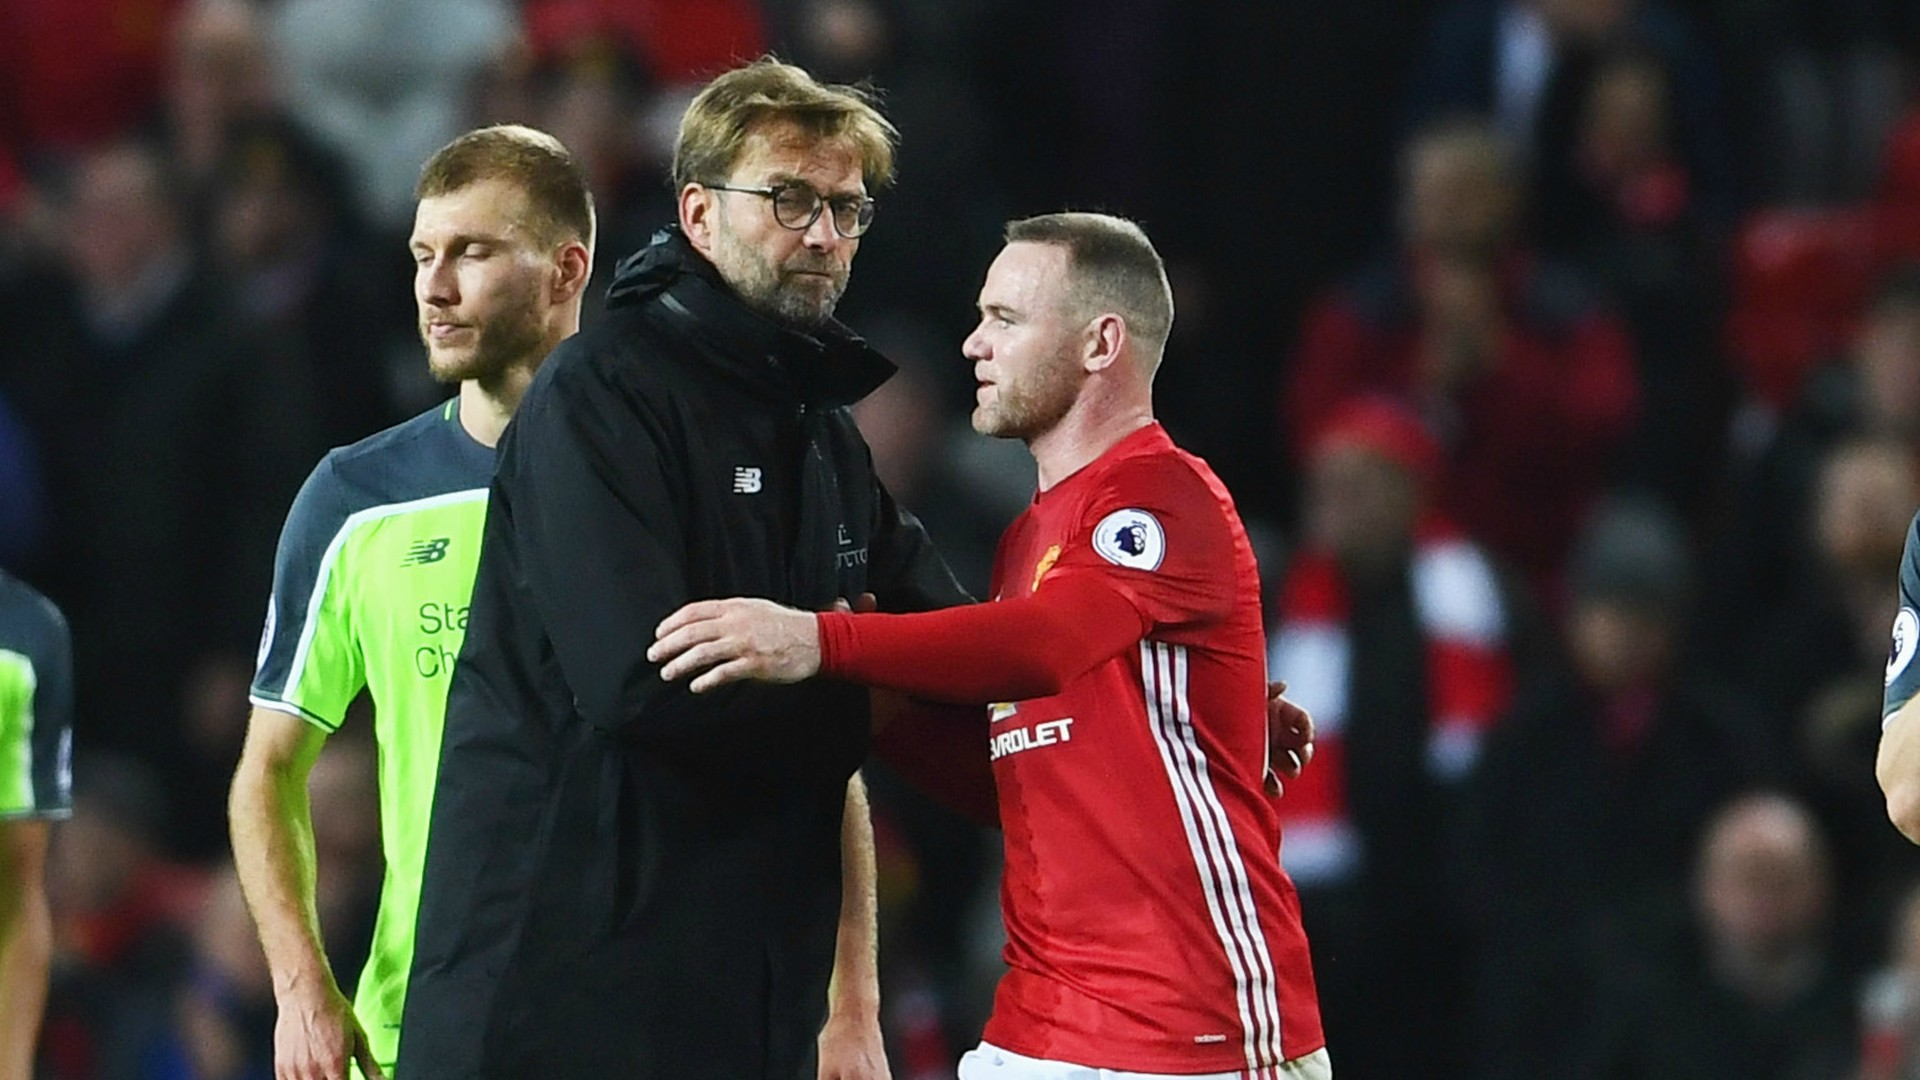 Wayne Rooney: Every player would want to play for Jurgen Klopp